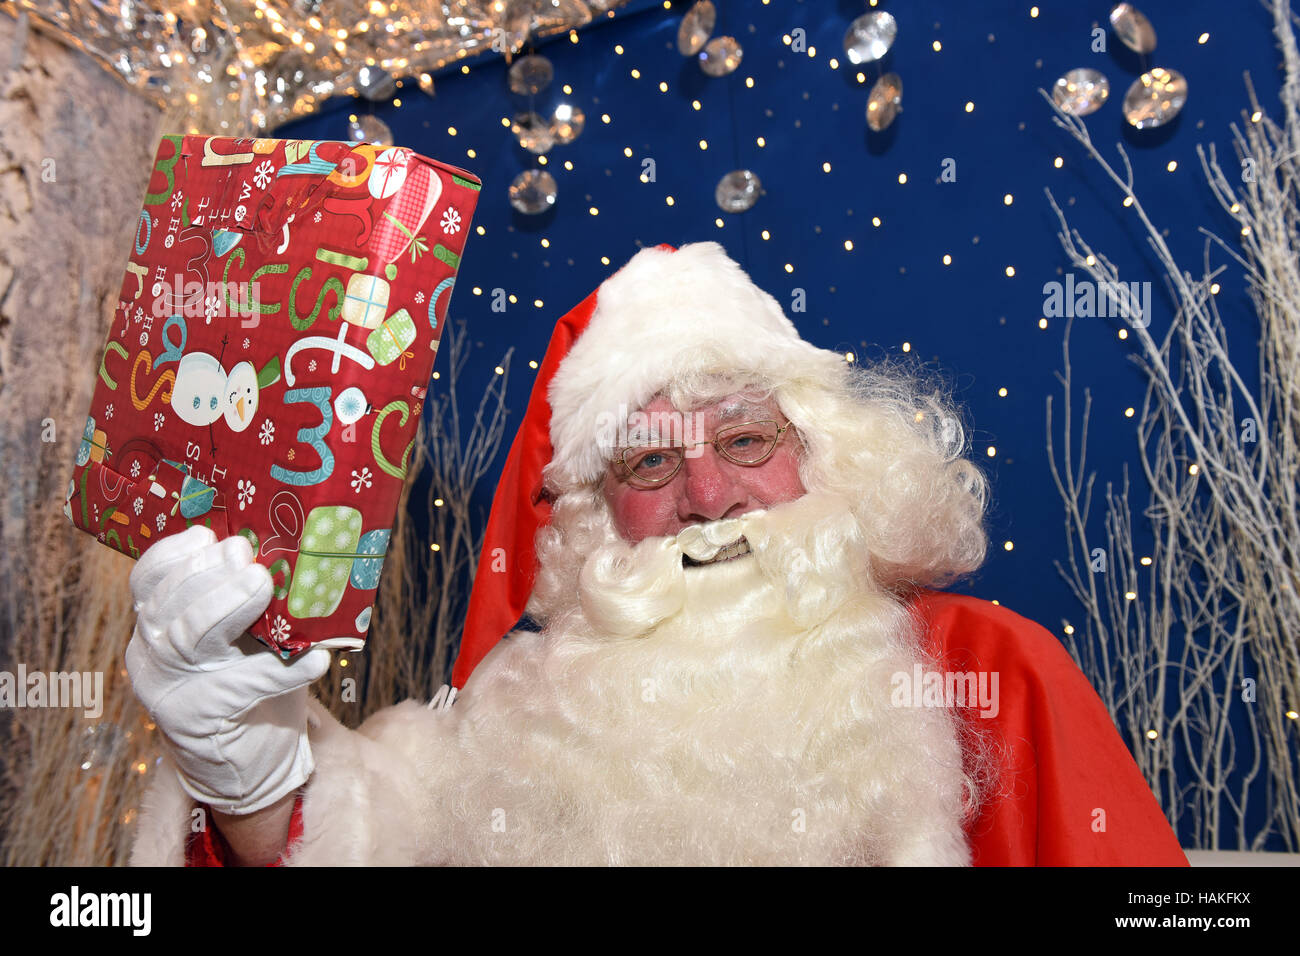 Santa Claus or Father Christmas handing out gifts in his grotto - Stock Image